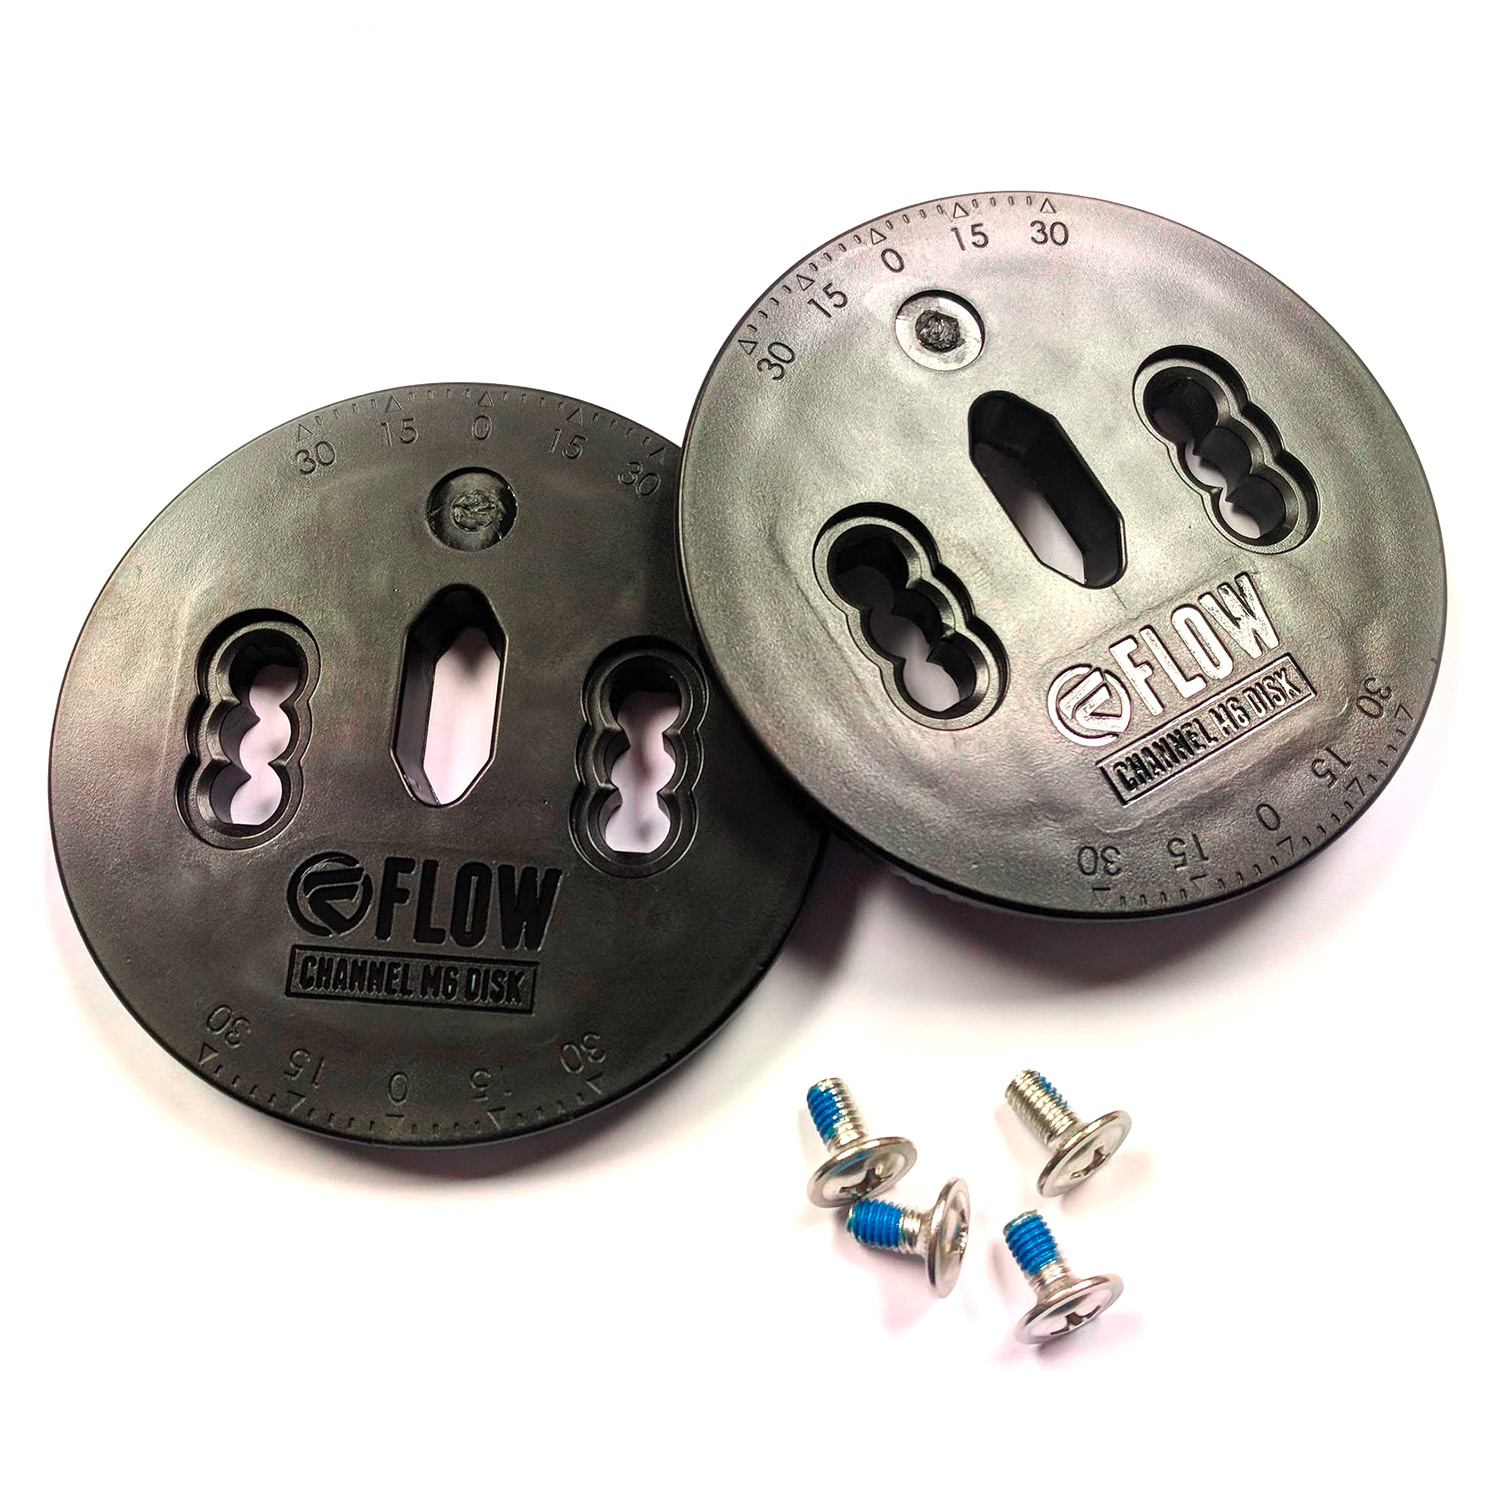 Flow Channel Disk Set M6 Binding Disc